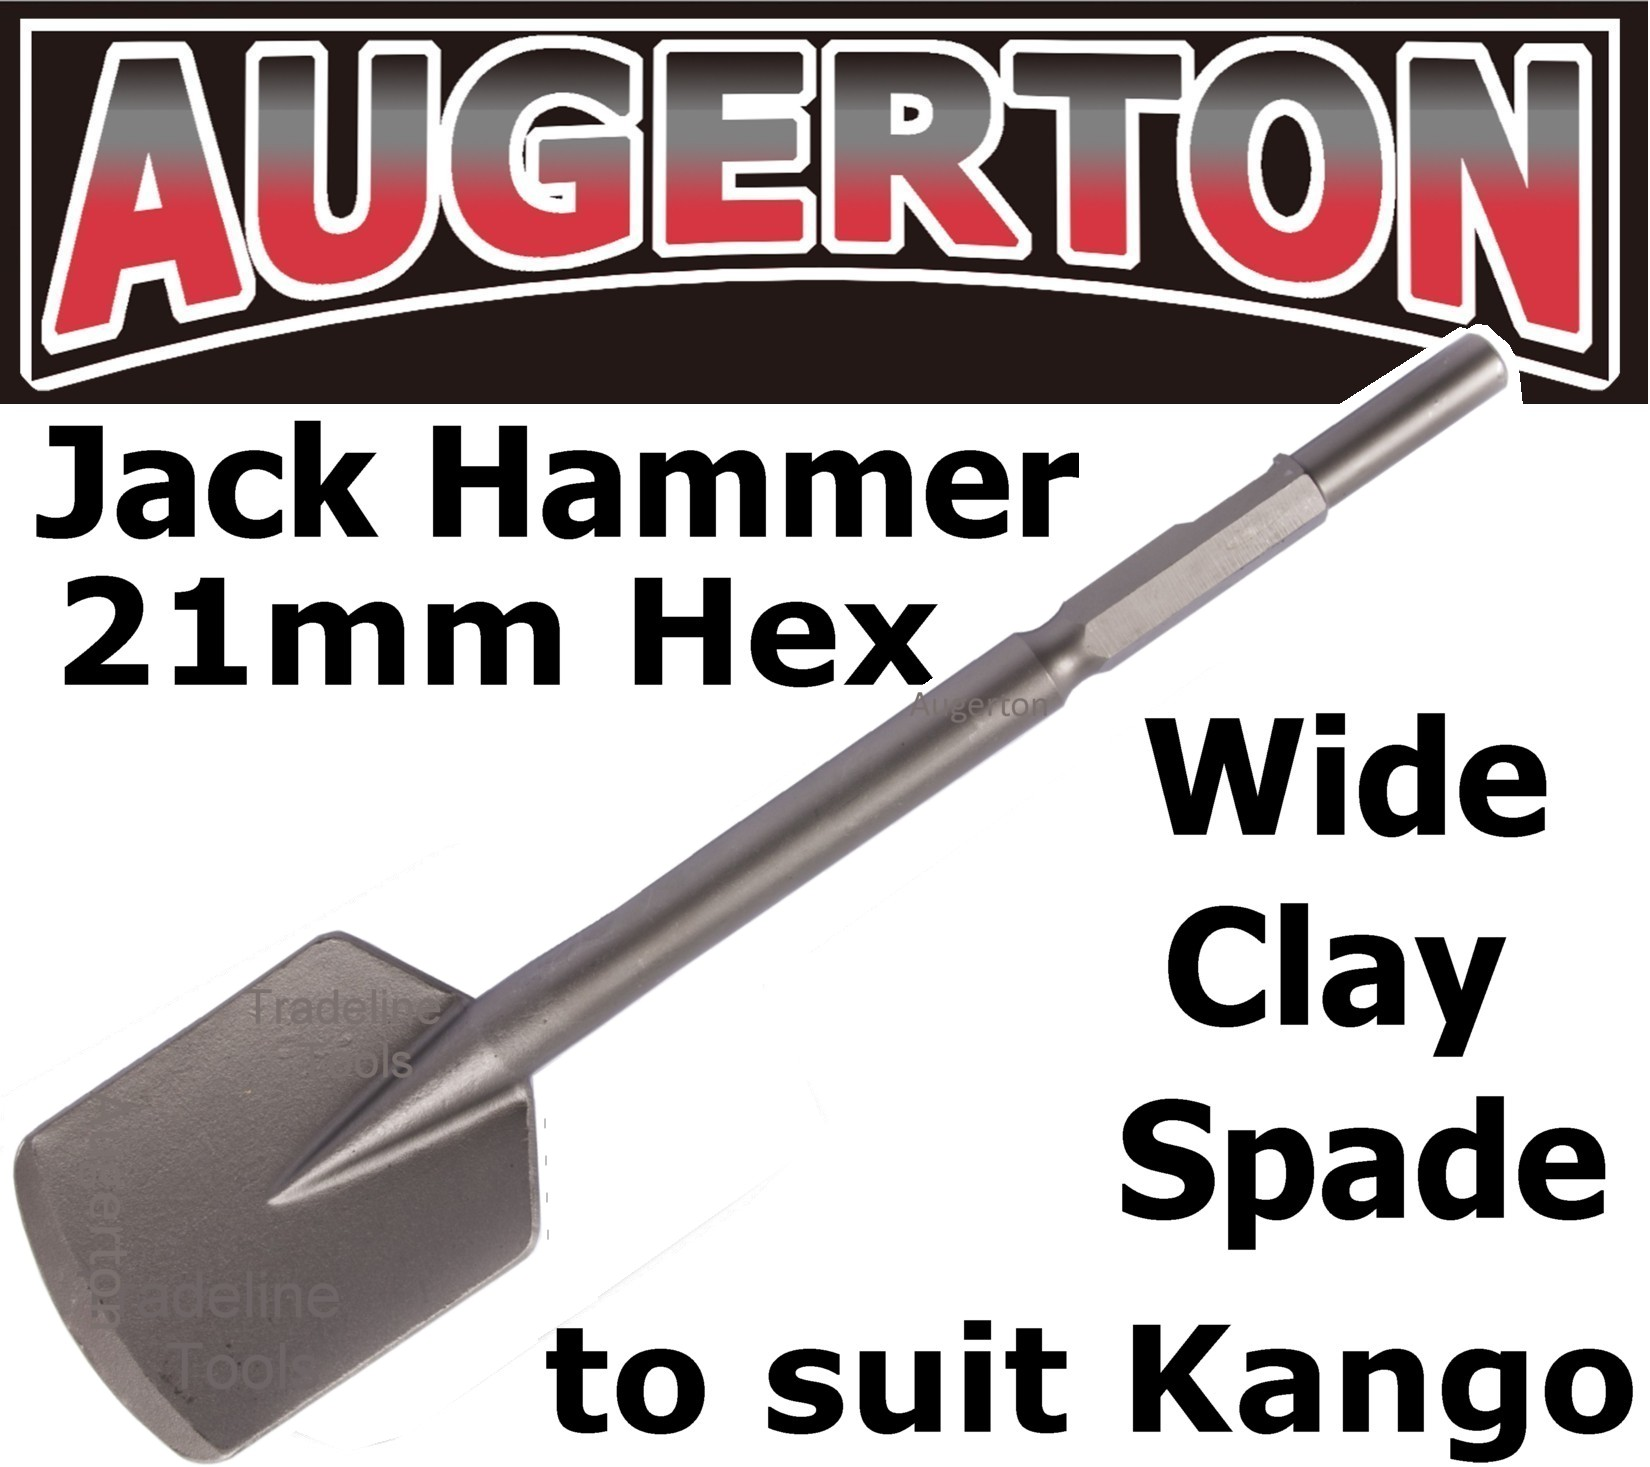 Augerton JACK HAMMER SQUARE MOUTH LONG SERIES CLAY SPADE CHISEL to suit  Kango 21mm Hex